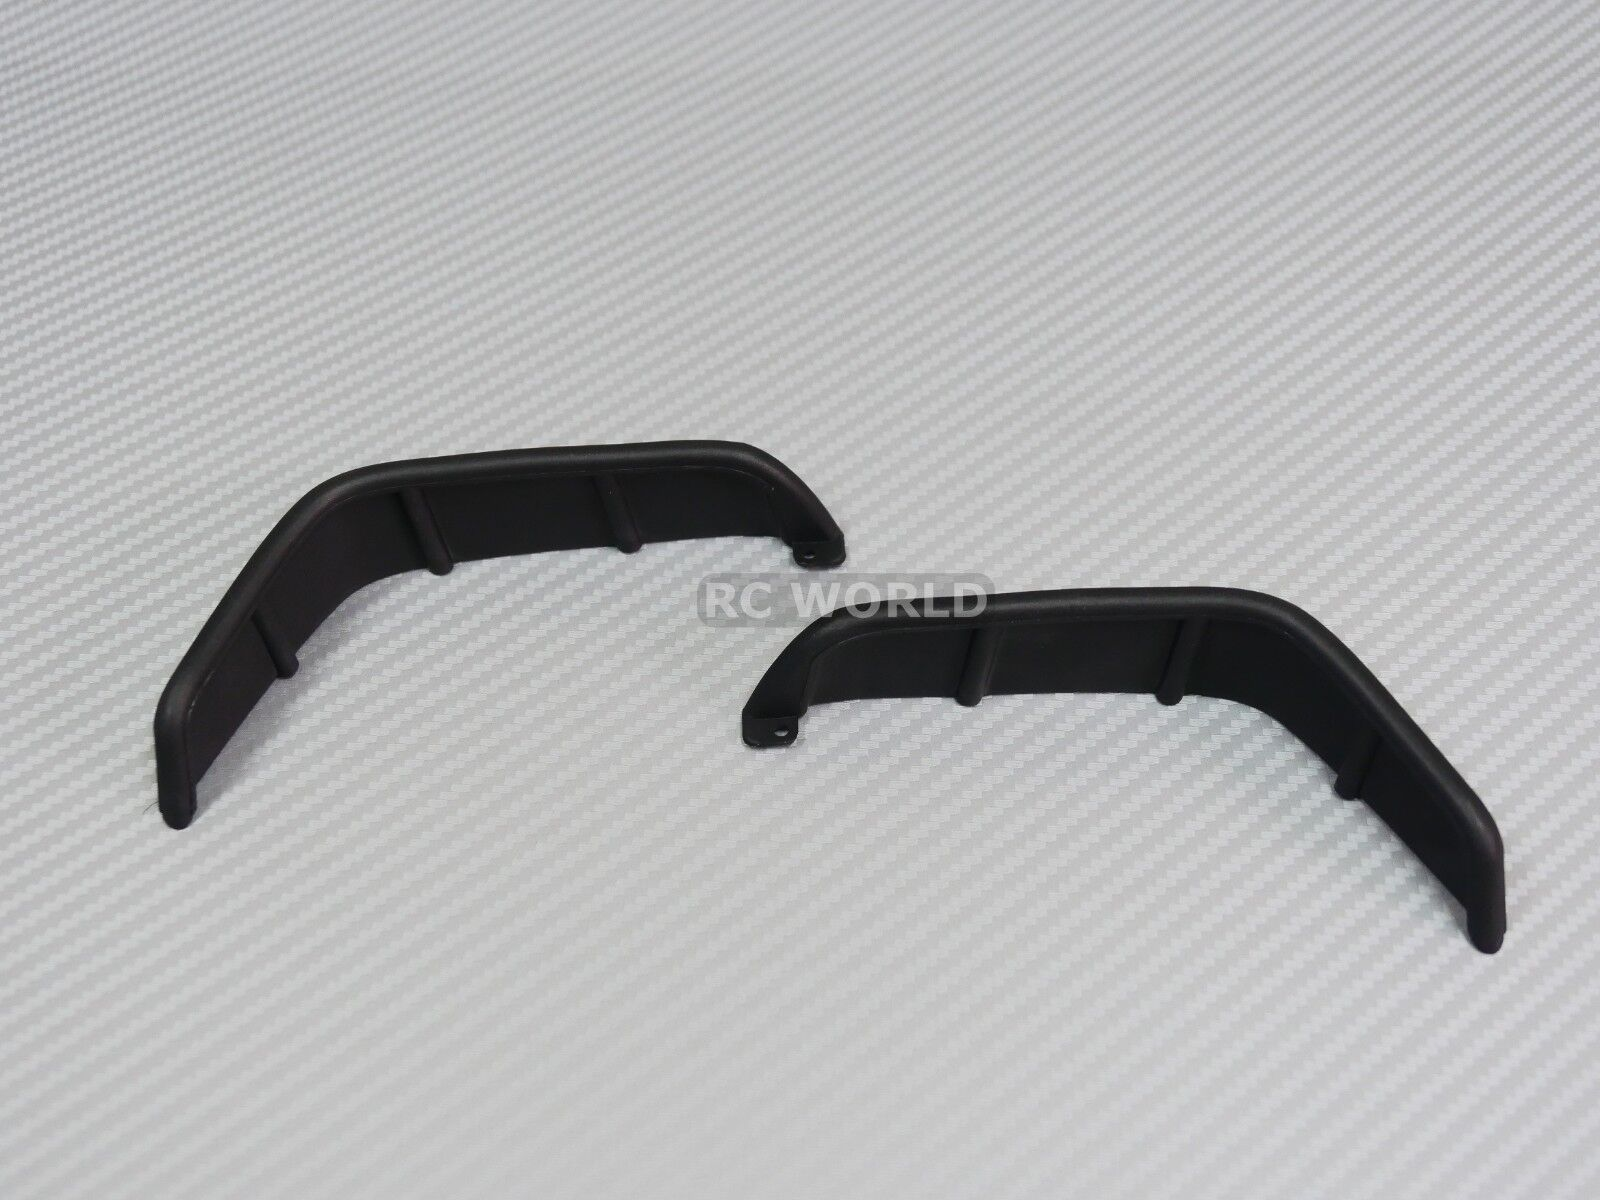 RC 1/10 Scale JEEP Body Shell BLACK FENDERS For WRANGLER